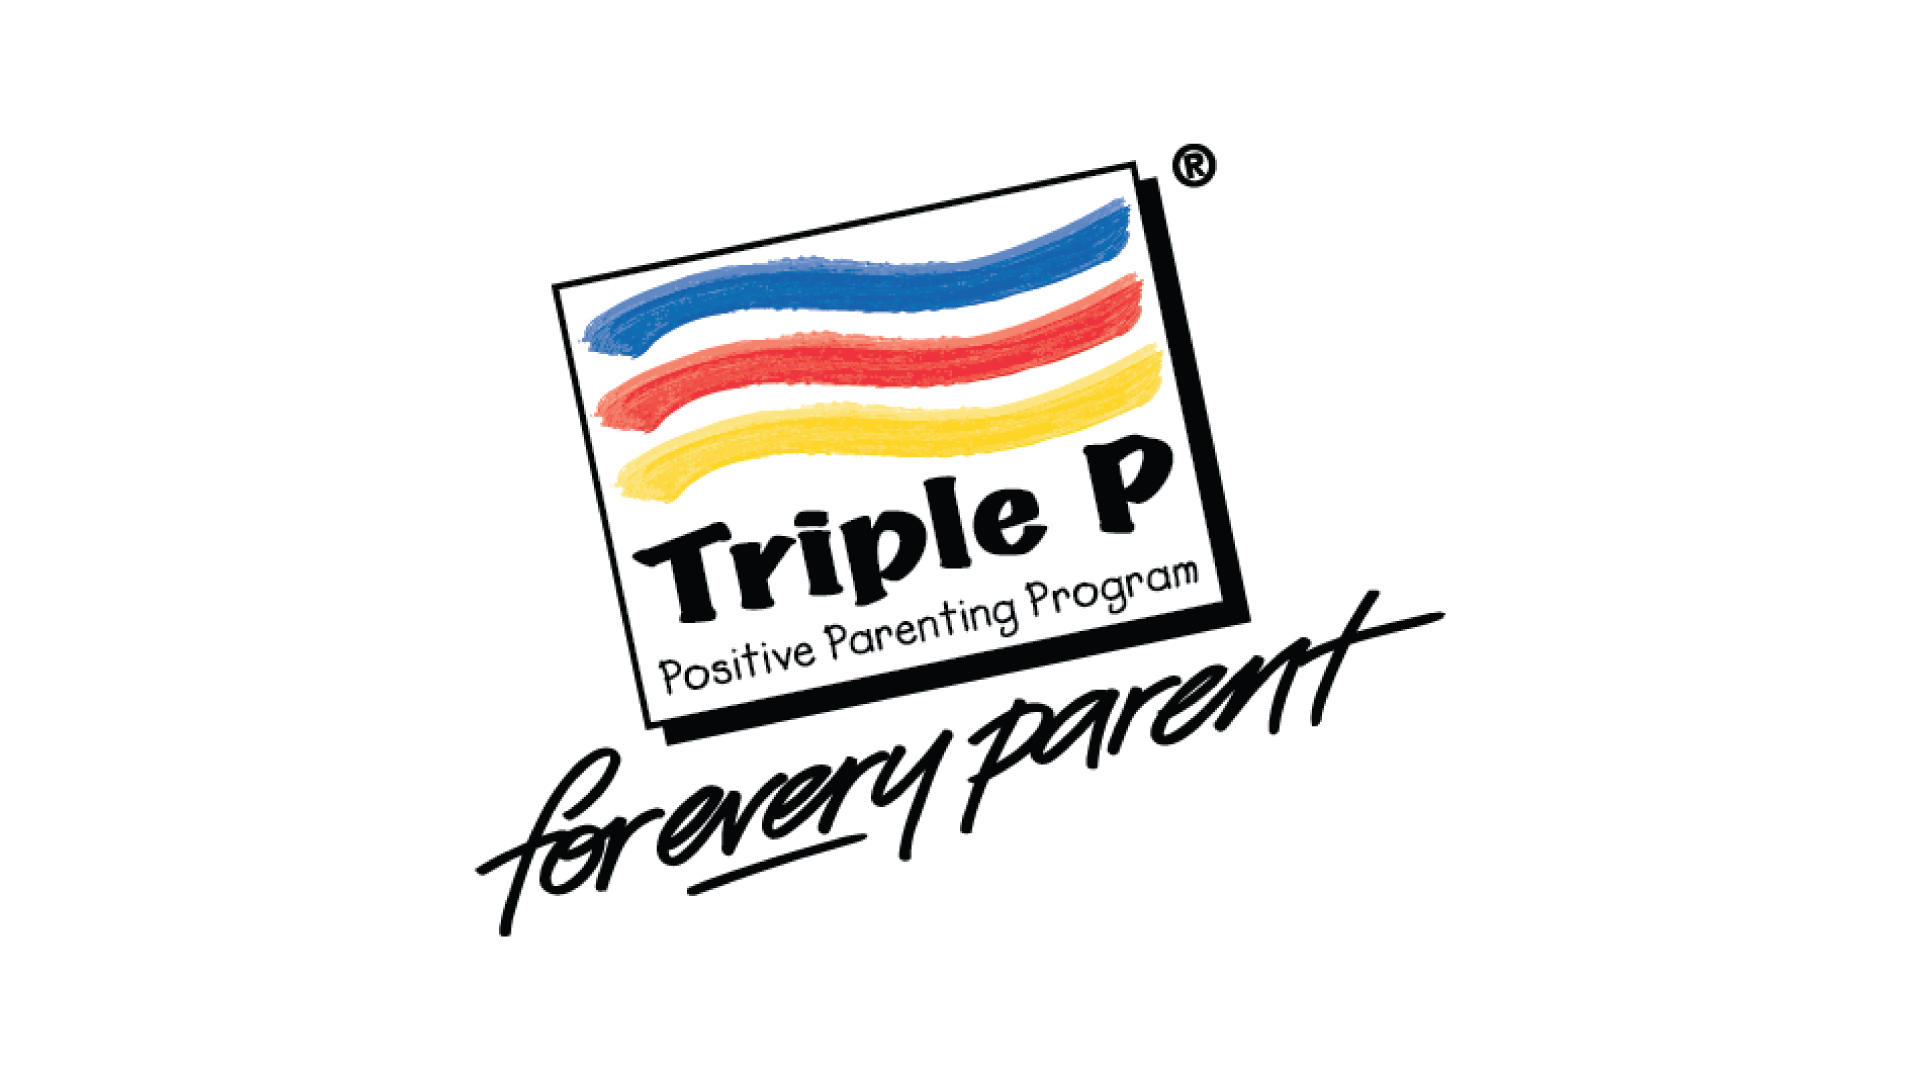 Triple P program logo